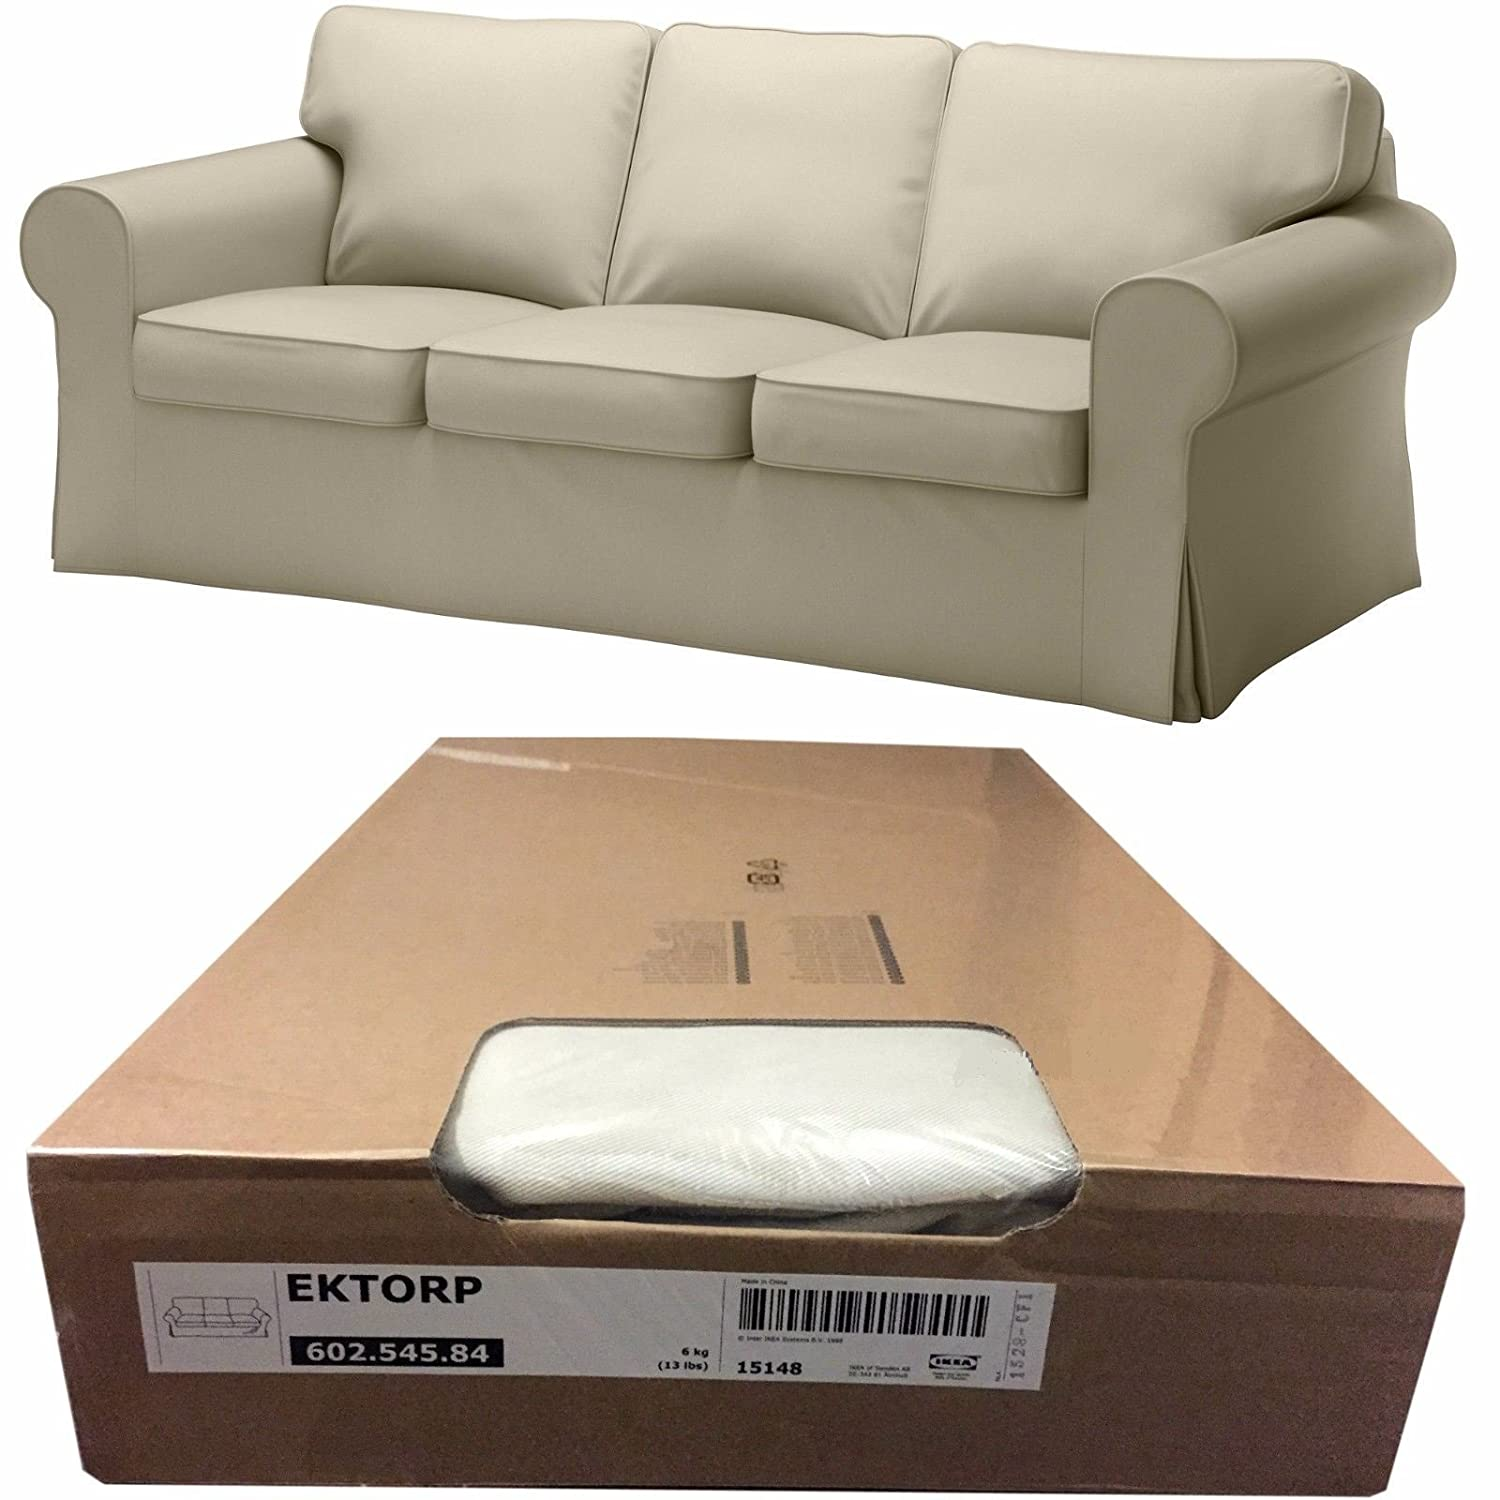 Amazon.com: Ikea Ektorp 3 Seat Sofa Cover, Tygelsjo Beige (Slipcover Only)  602.545.84: Home U0026 Kitchen